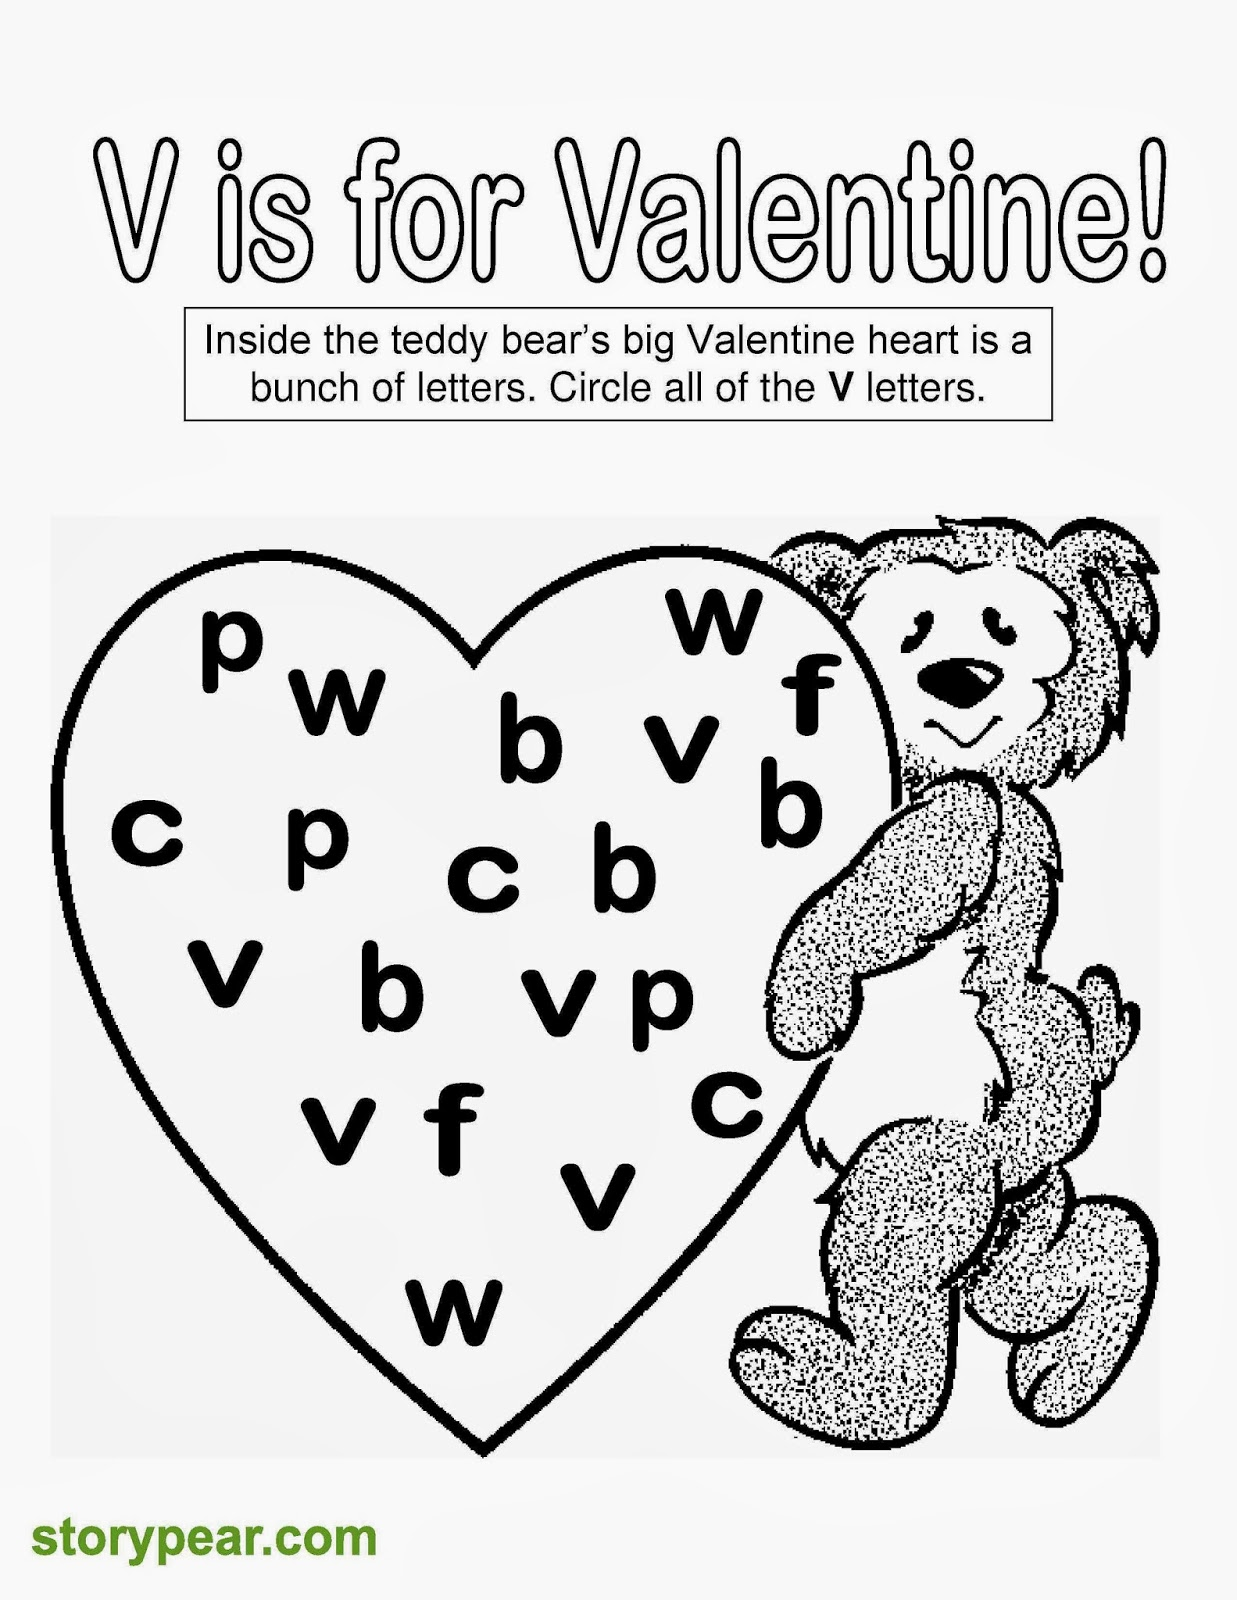 Story Pear Free Valentine Days Printable Sheets For Preschoolers - Free-printable-sheets